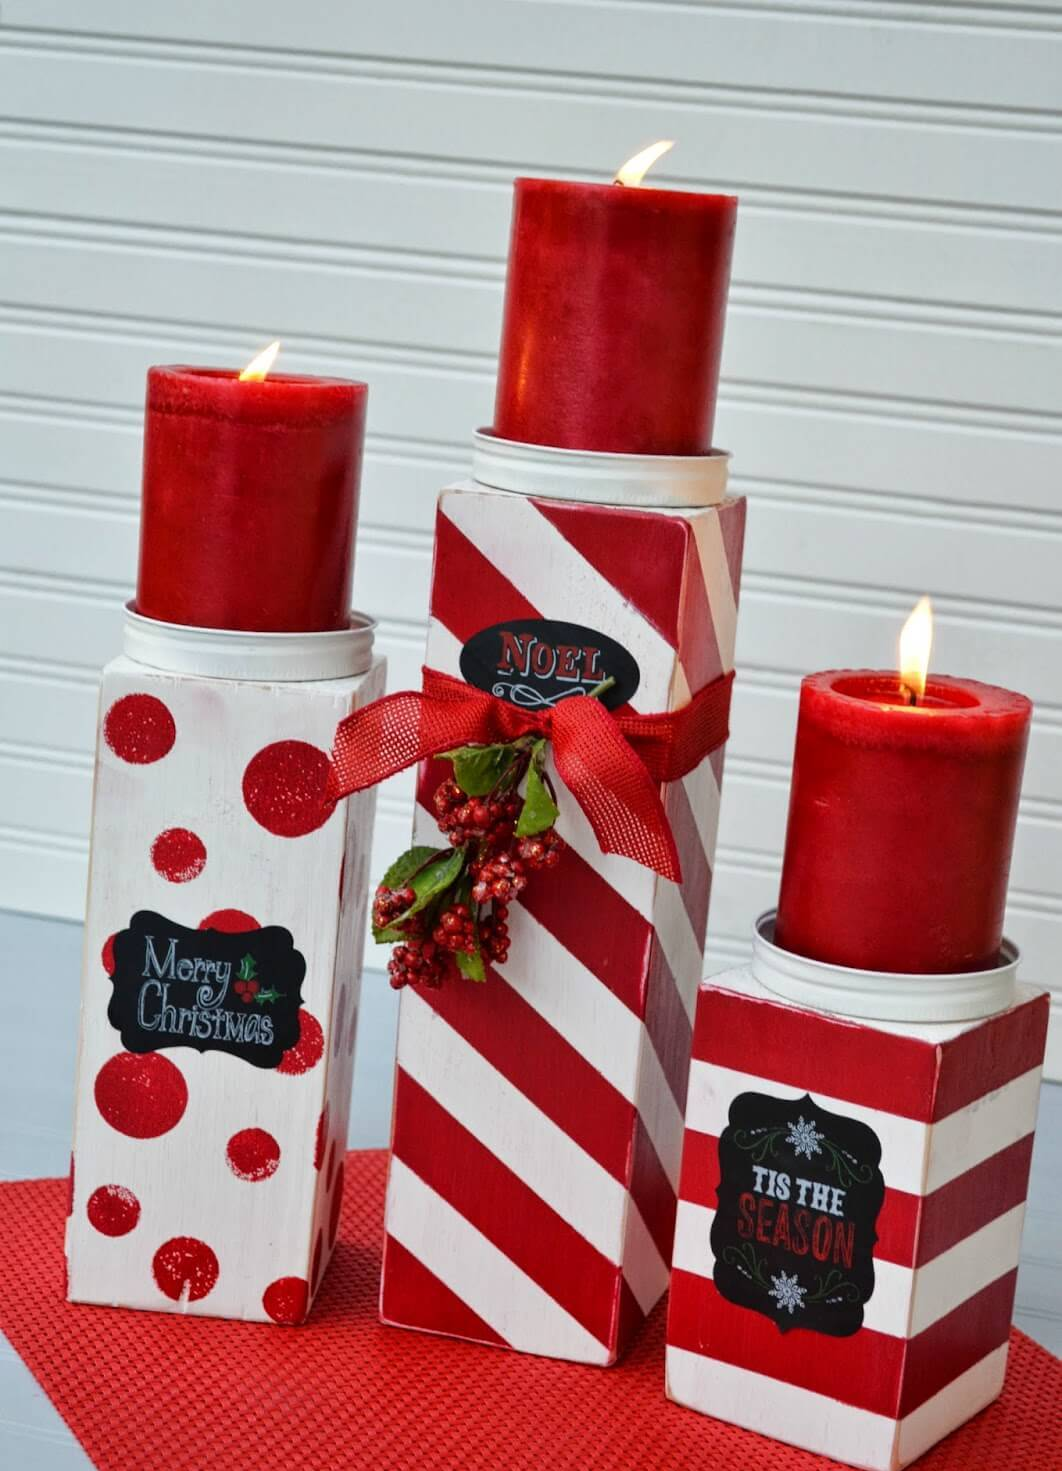 Festive Patterned Gift Box Candle Pedestals thewowdecor